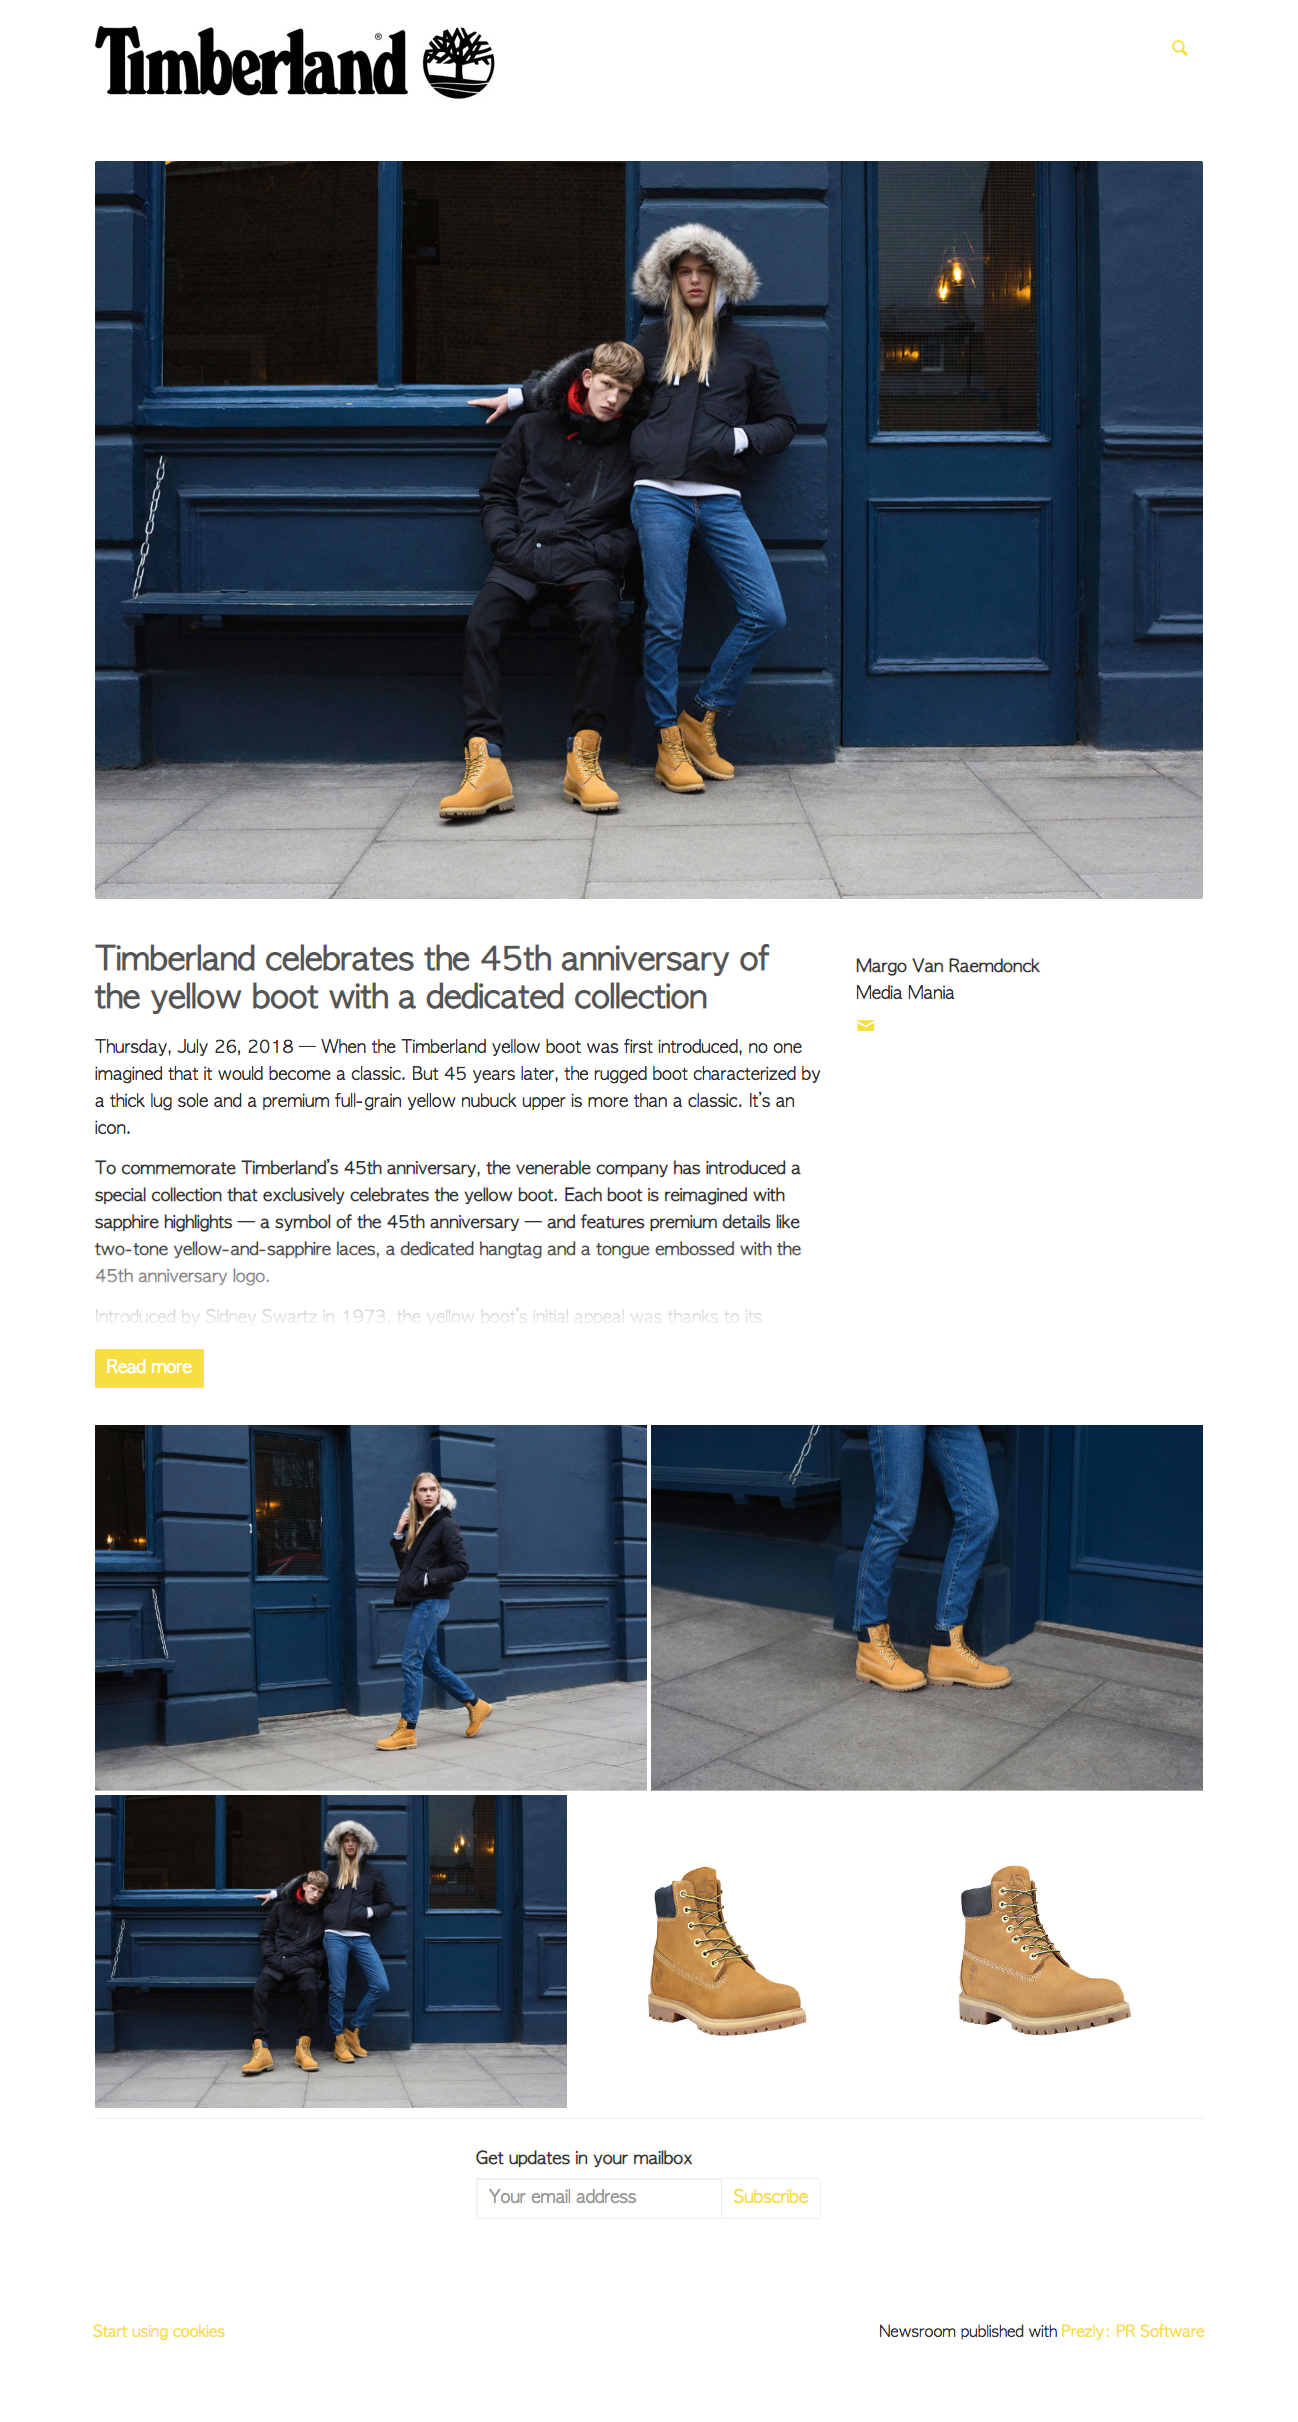 Product Anniversary Press Release Example Timberland